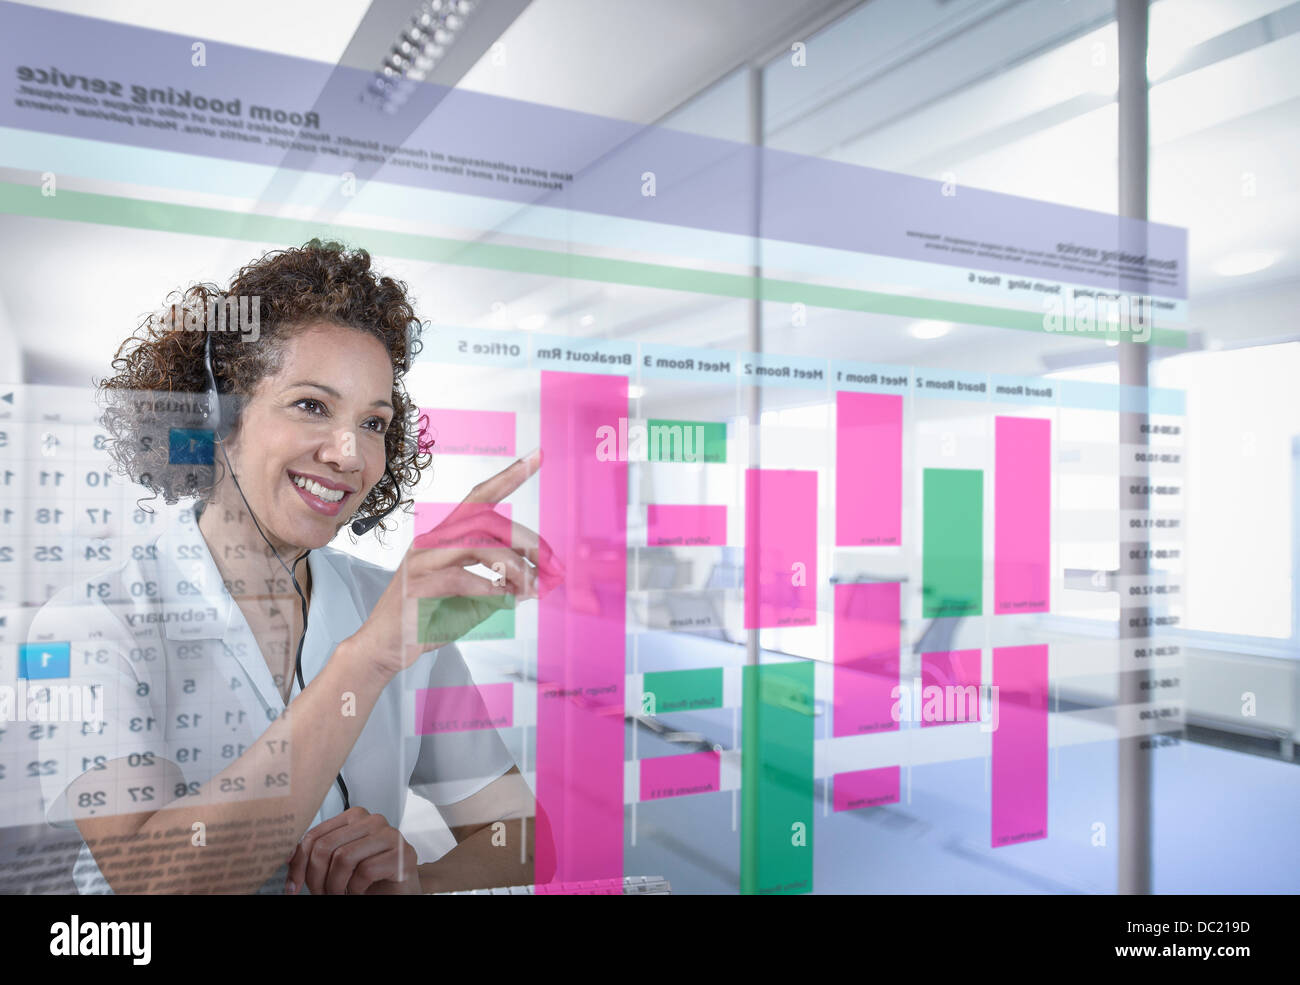 Receptionist booking meeting rooms with interactive screen Stock Photo